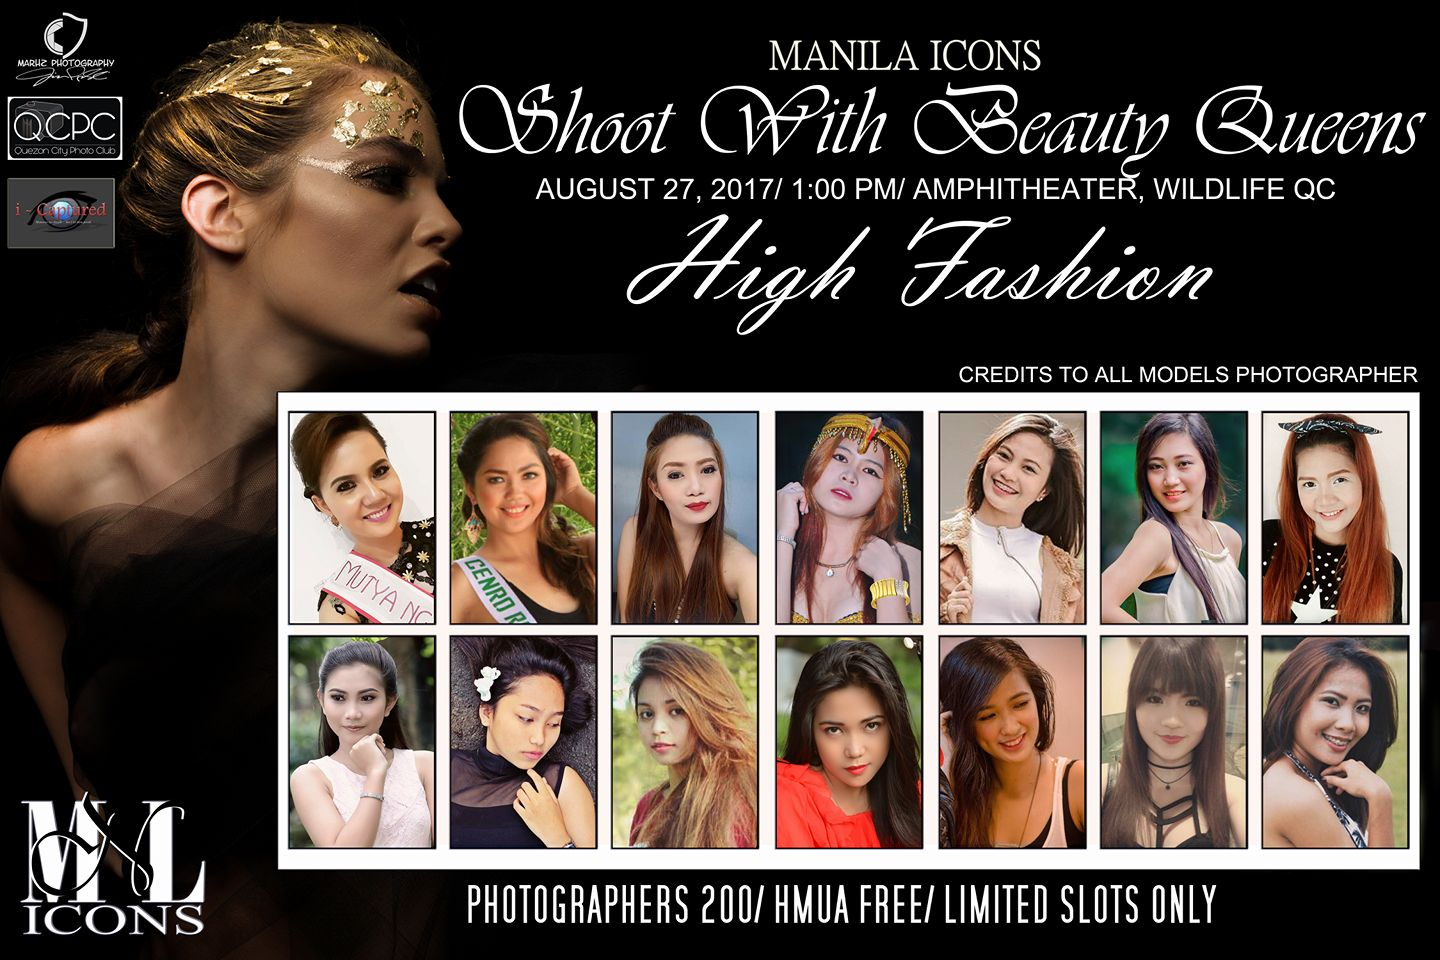 Mar Porras‎Quezon City Photo Club Follow · 16 hrs · Shoot With Beauty Queens MNL Icons In house Models, August 27, 2017(Sunday), 1:00 pm sharp Amphitheater Wildlife QC Photographers (200php/limited slots only)... See More — with Anne Dapito, Alemohr Dilanila, Alison Salvante Arro, Rina Mae Lao Saltarin, Chanel Florentino, Cyrah Rama, Jane Echaluce, Cj Lee Franco, Princezs April and Rona Malaluan Magan. --- Vladimir E Estocado ‎QCPC XXX eXciting eXtraordinary eXperience 14 hrs · With Candelaria Cherry Ann, Alison Salvante Arro, Chanel Florentino, Daisy Gimena Paraiso, Jane Echaluce and Princezs April.